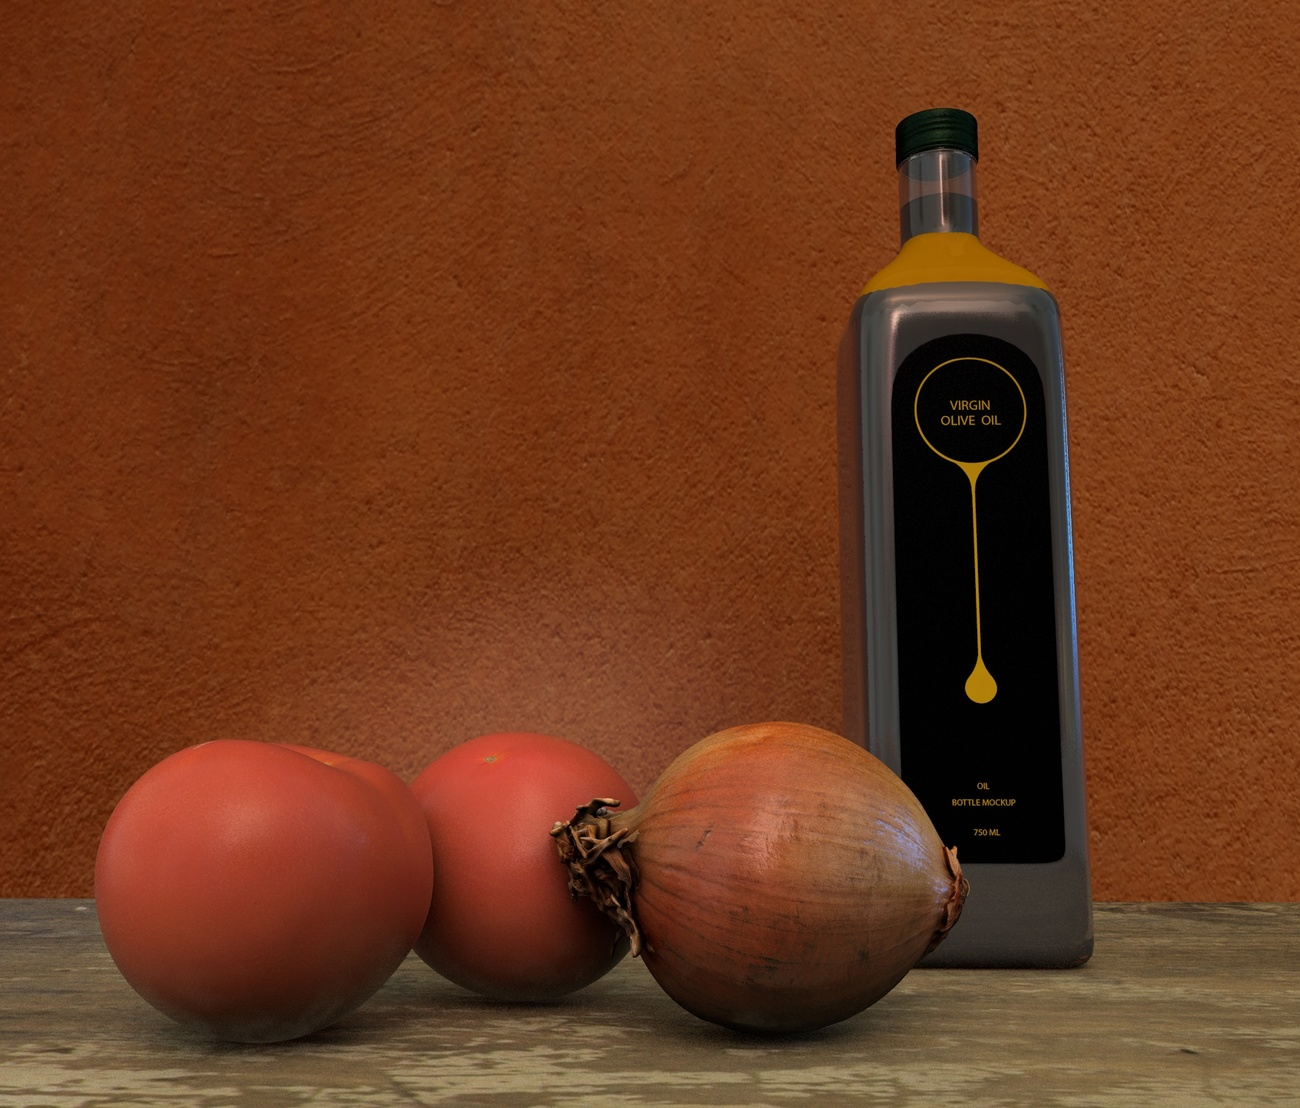 Smell like ratatouille by surgel